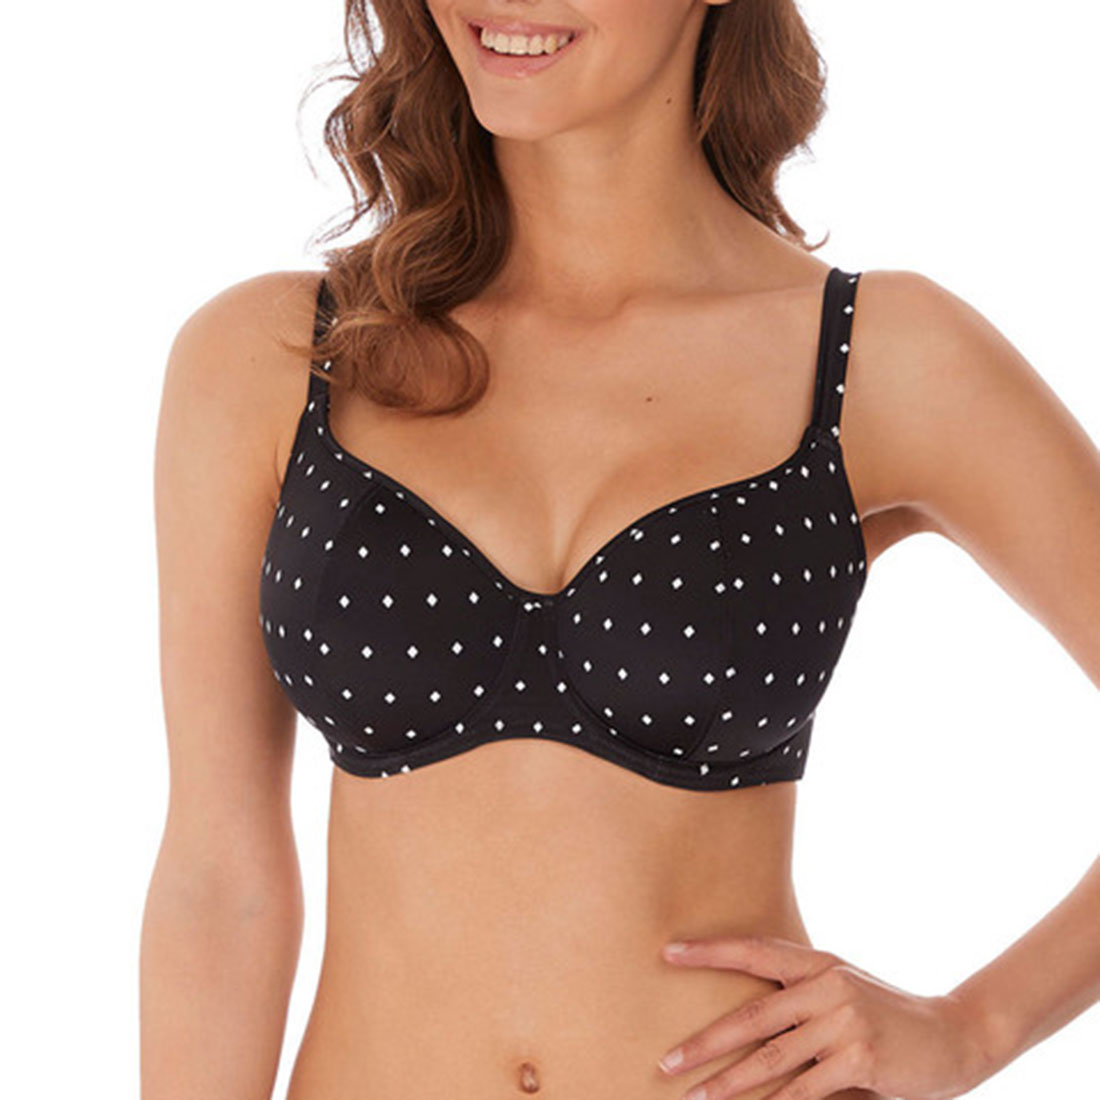 Jewel Cove Sweetheart Padded Bikini Top